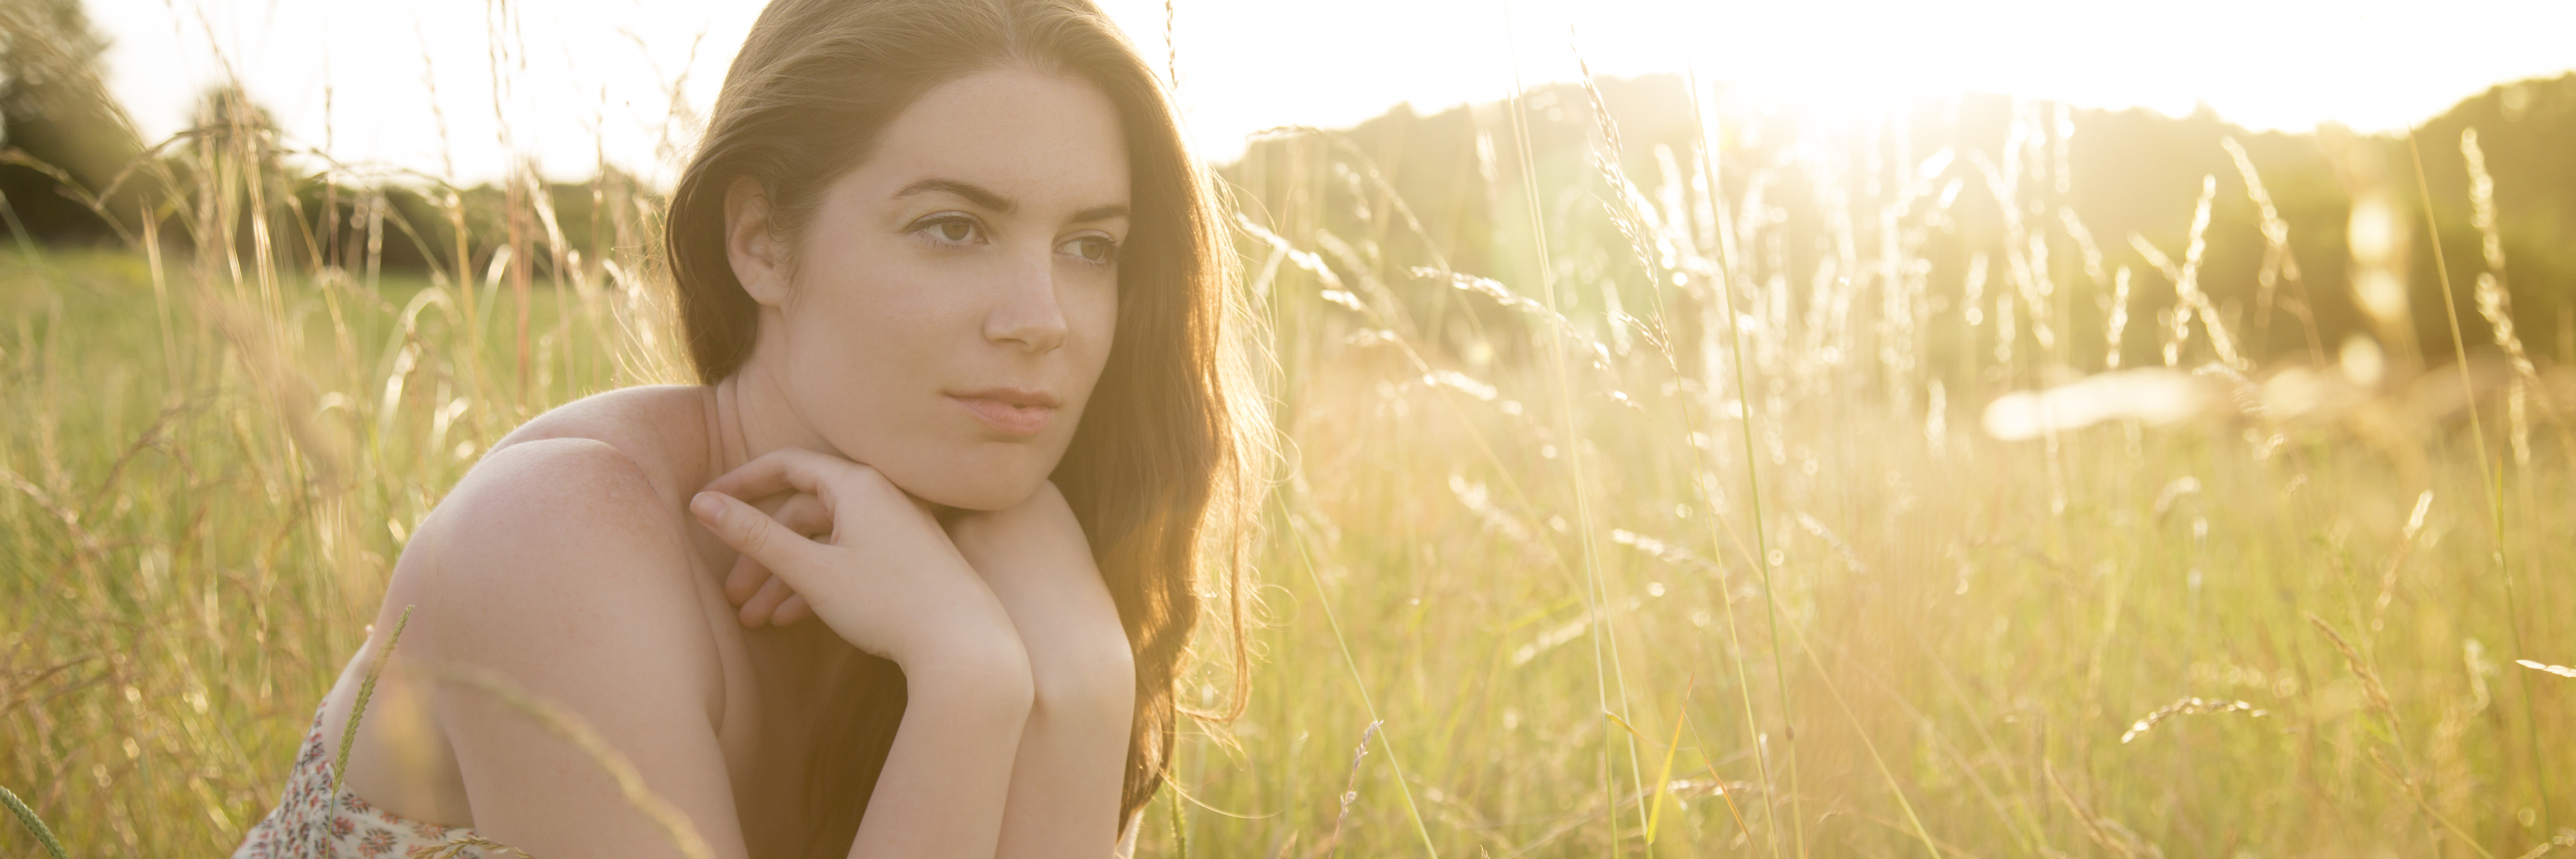 young woman in field in sunshine